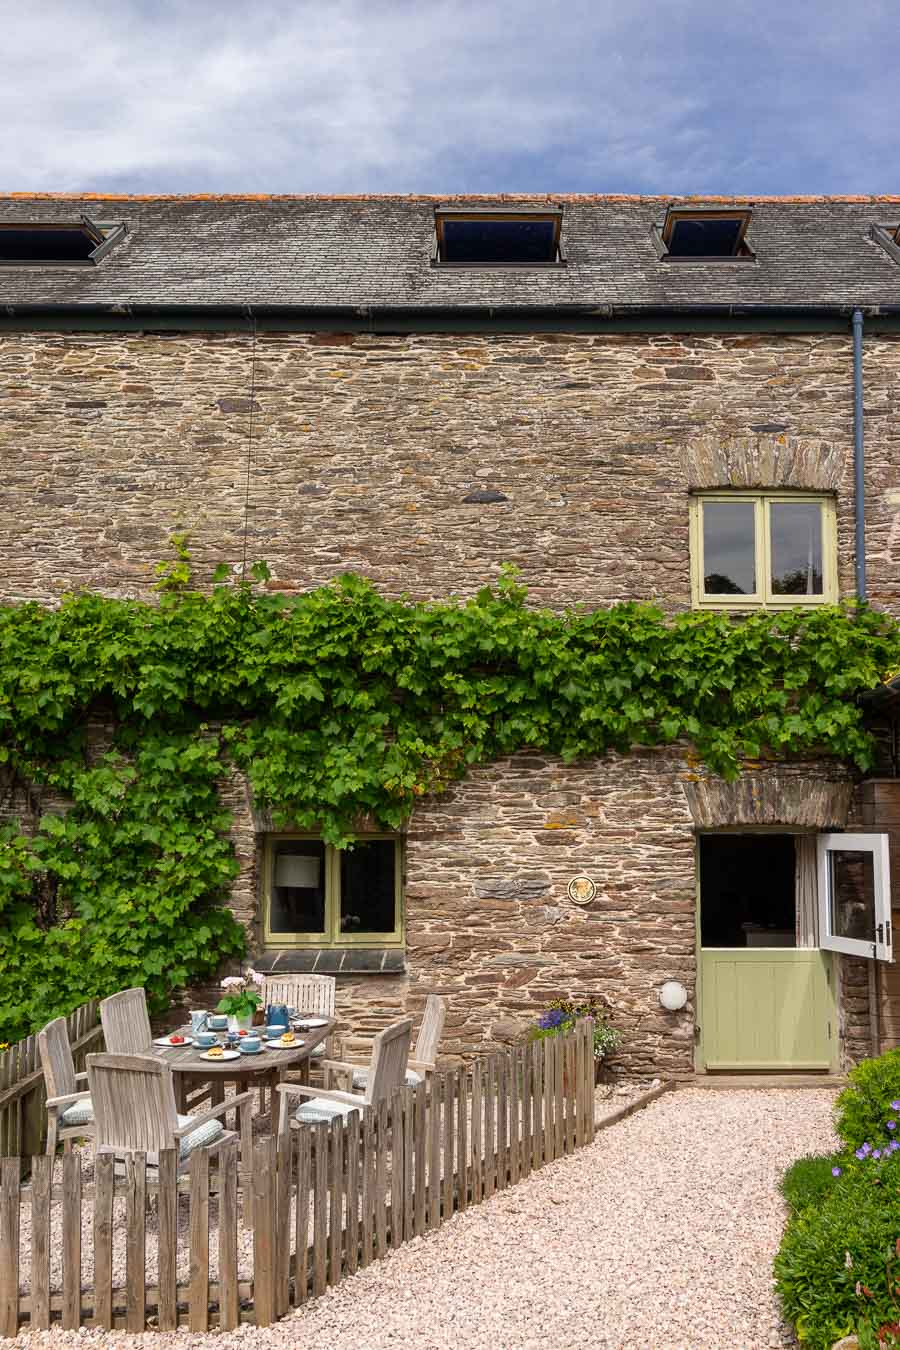 The Stalls is a 6-bed holiday cottage set in spectacular South Hams scenery, with everything you'll need for your stay.